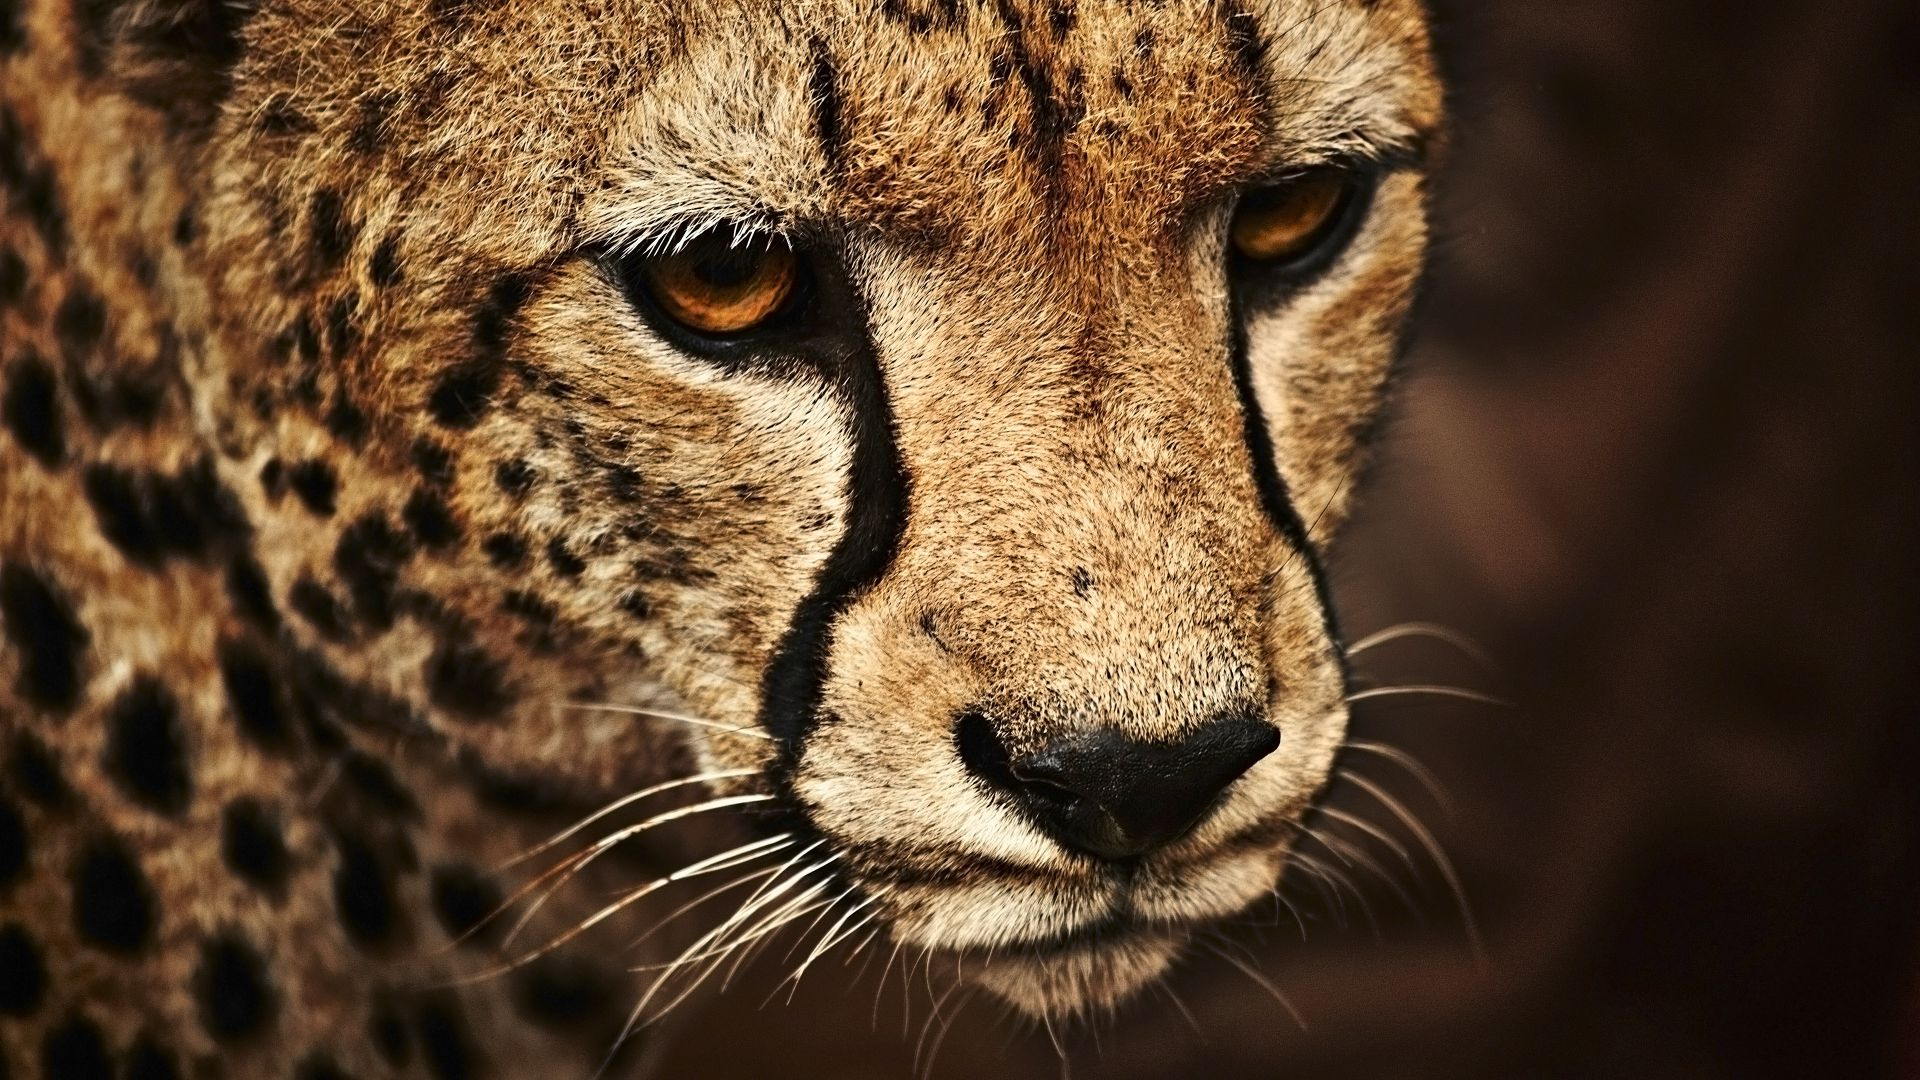 Wallpaper Cheetah Look Cute Animals Animals 5374